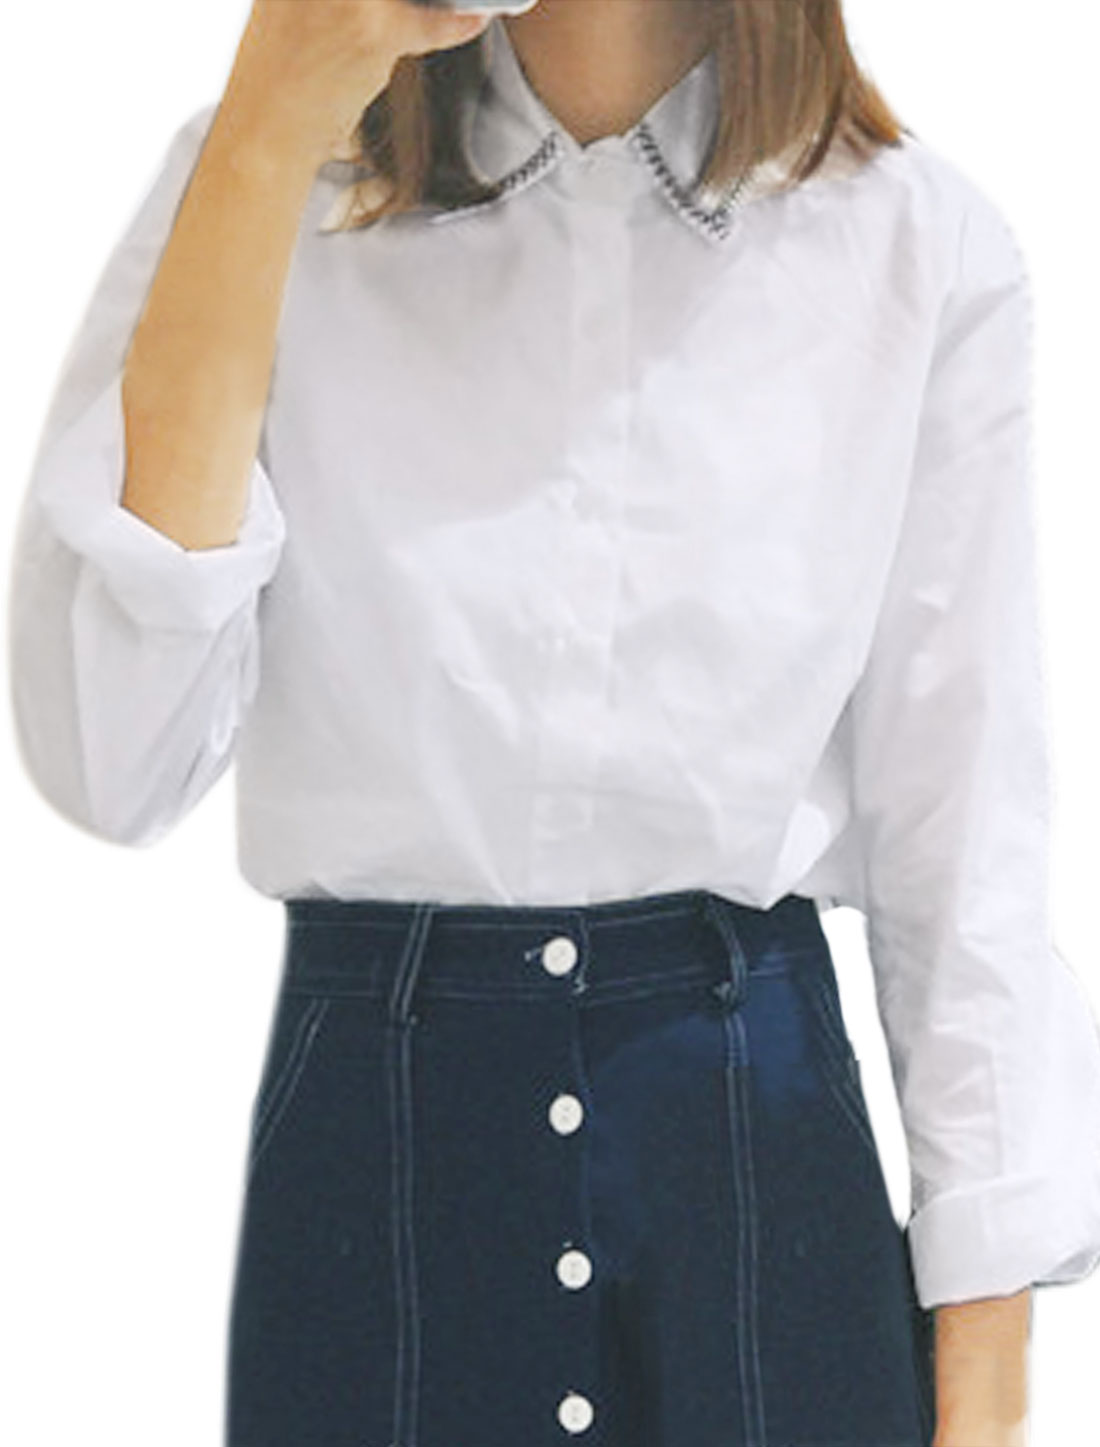 Women Stitching Point Collar Single Breasted Shirt White S